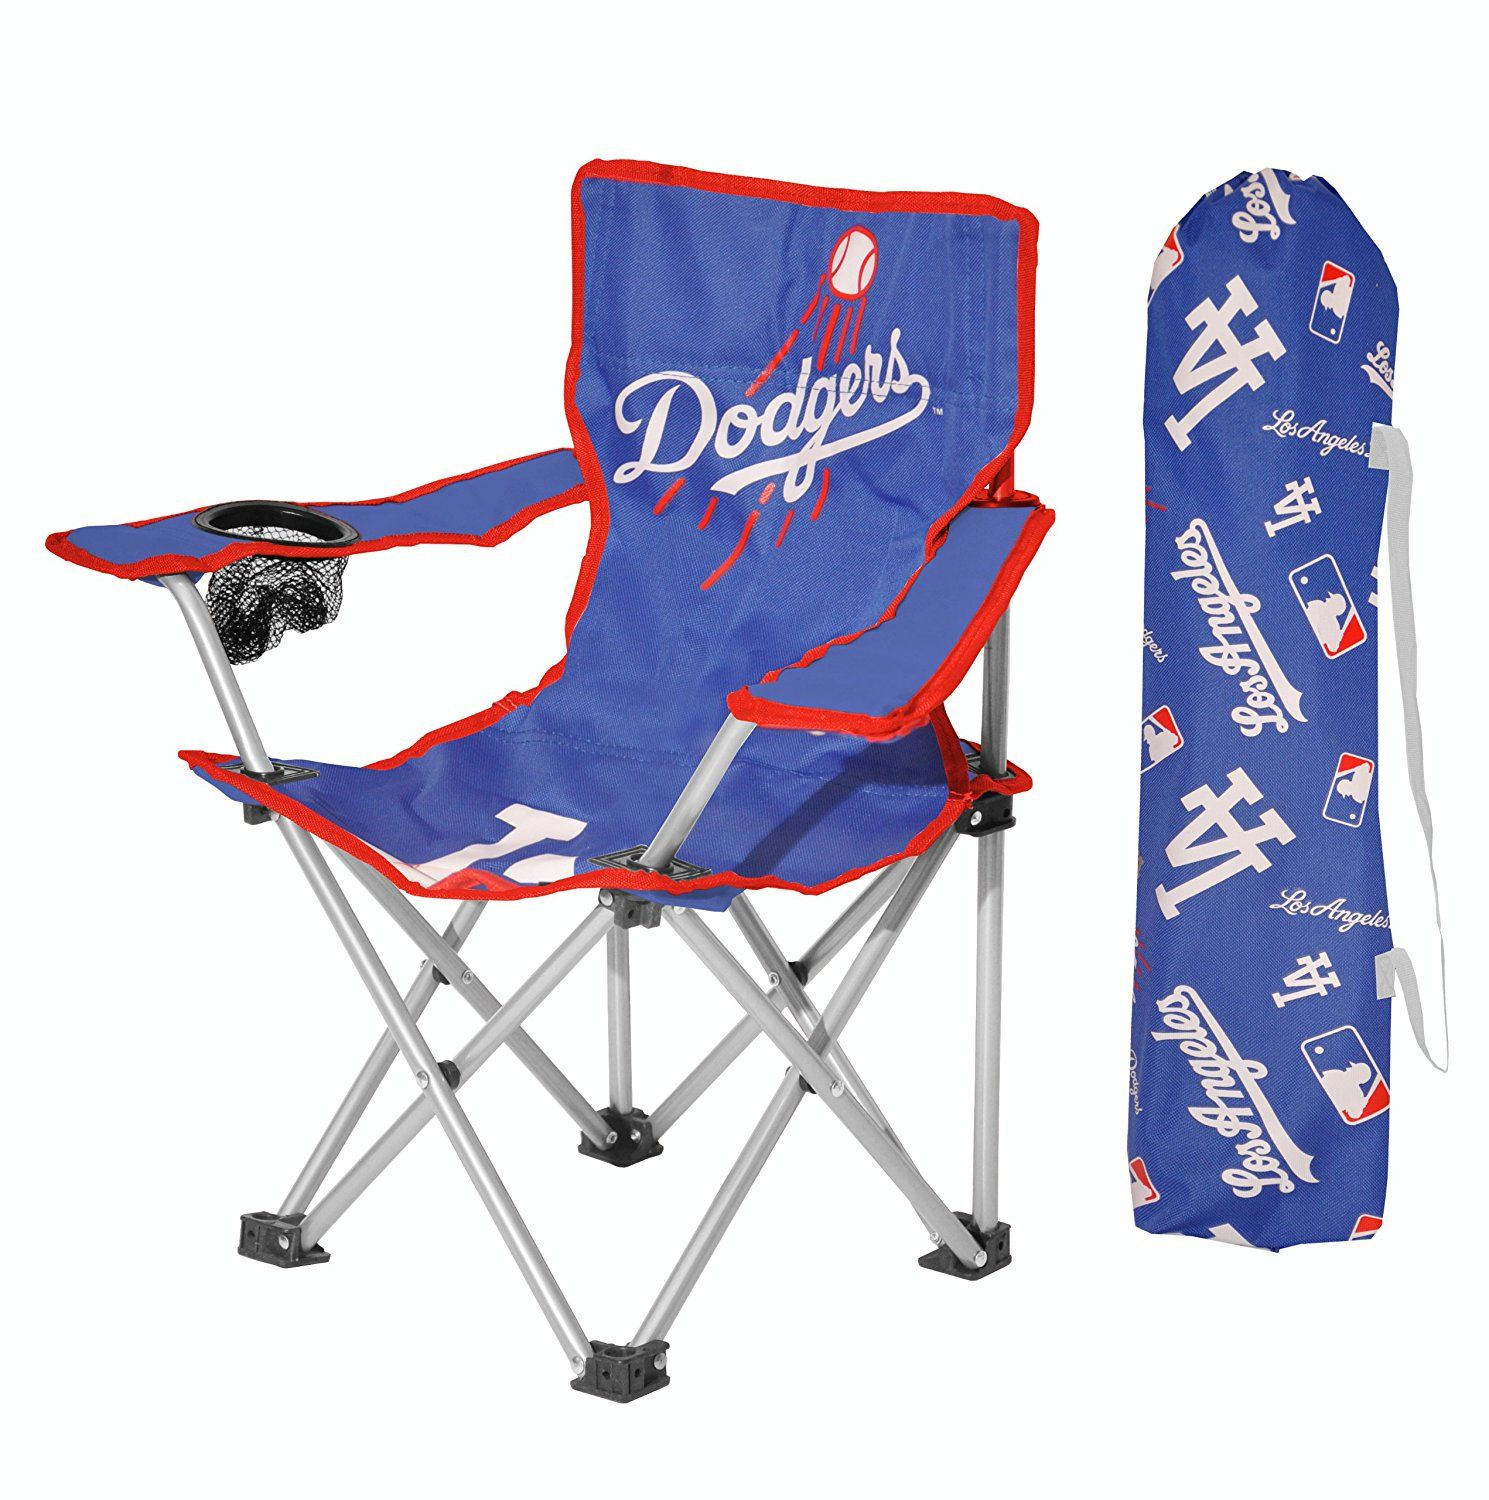 Kids Camping Chair With Carrying Bag Parenting and kids